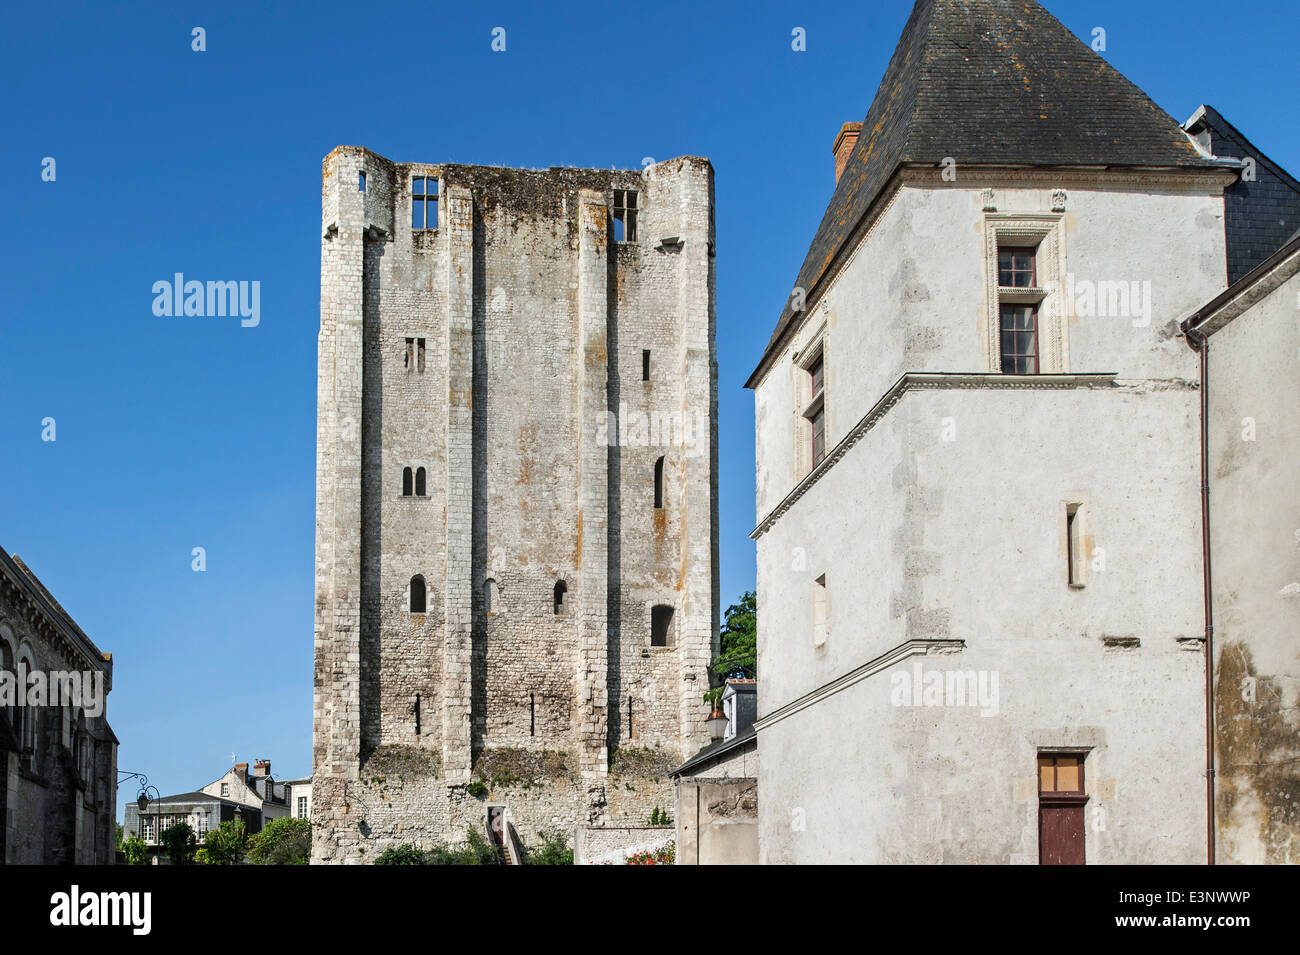 Dungeon of the medieval castle Château de Beaugency, one of the Châteaux of the Loire Valley, Loiret, - Stock Image